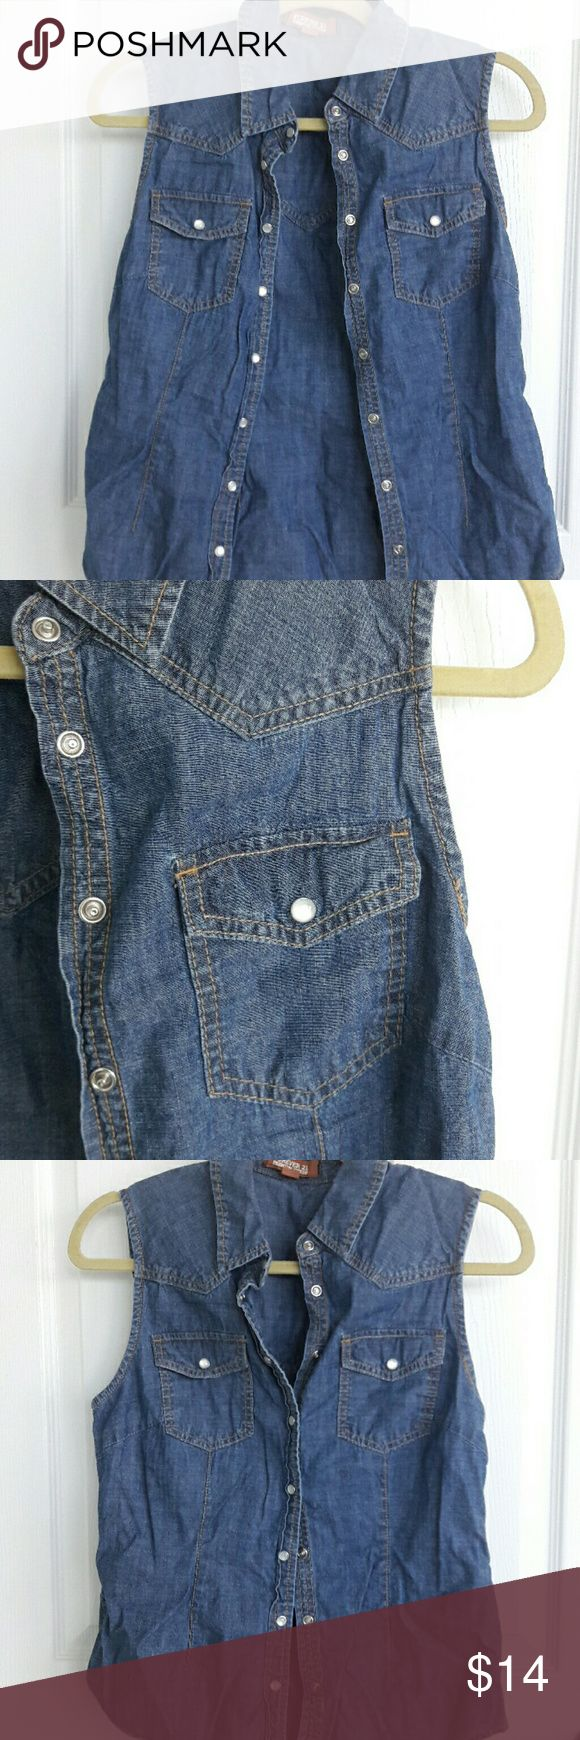 Sleeveless Denim Shirt Excellent condition. Nice fit. Tops